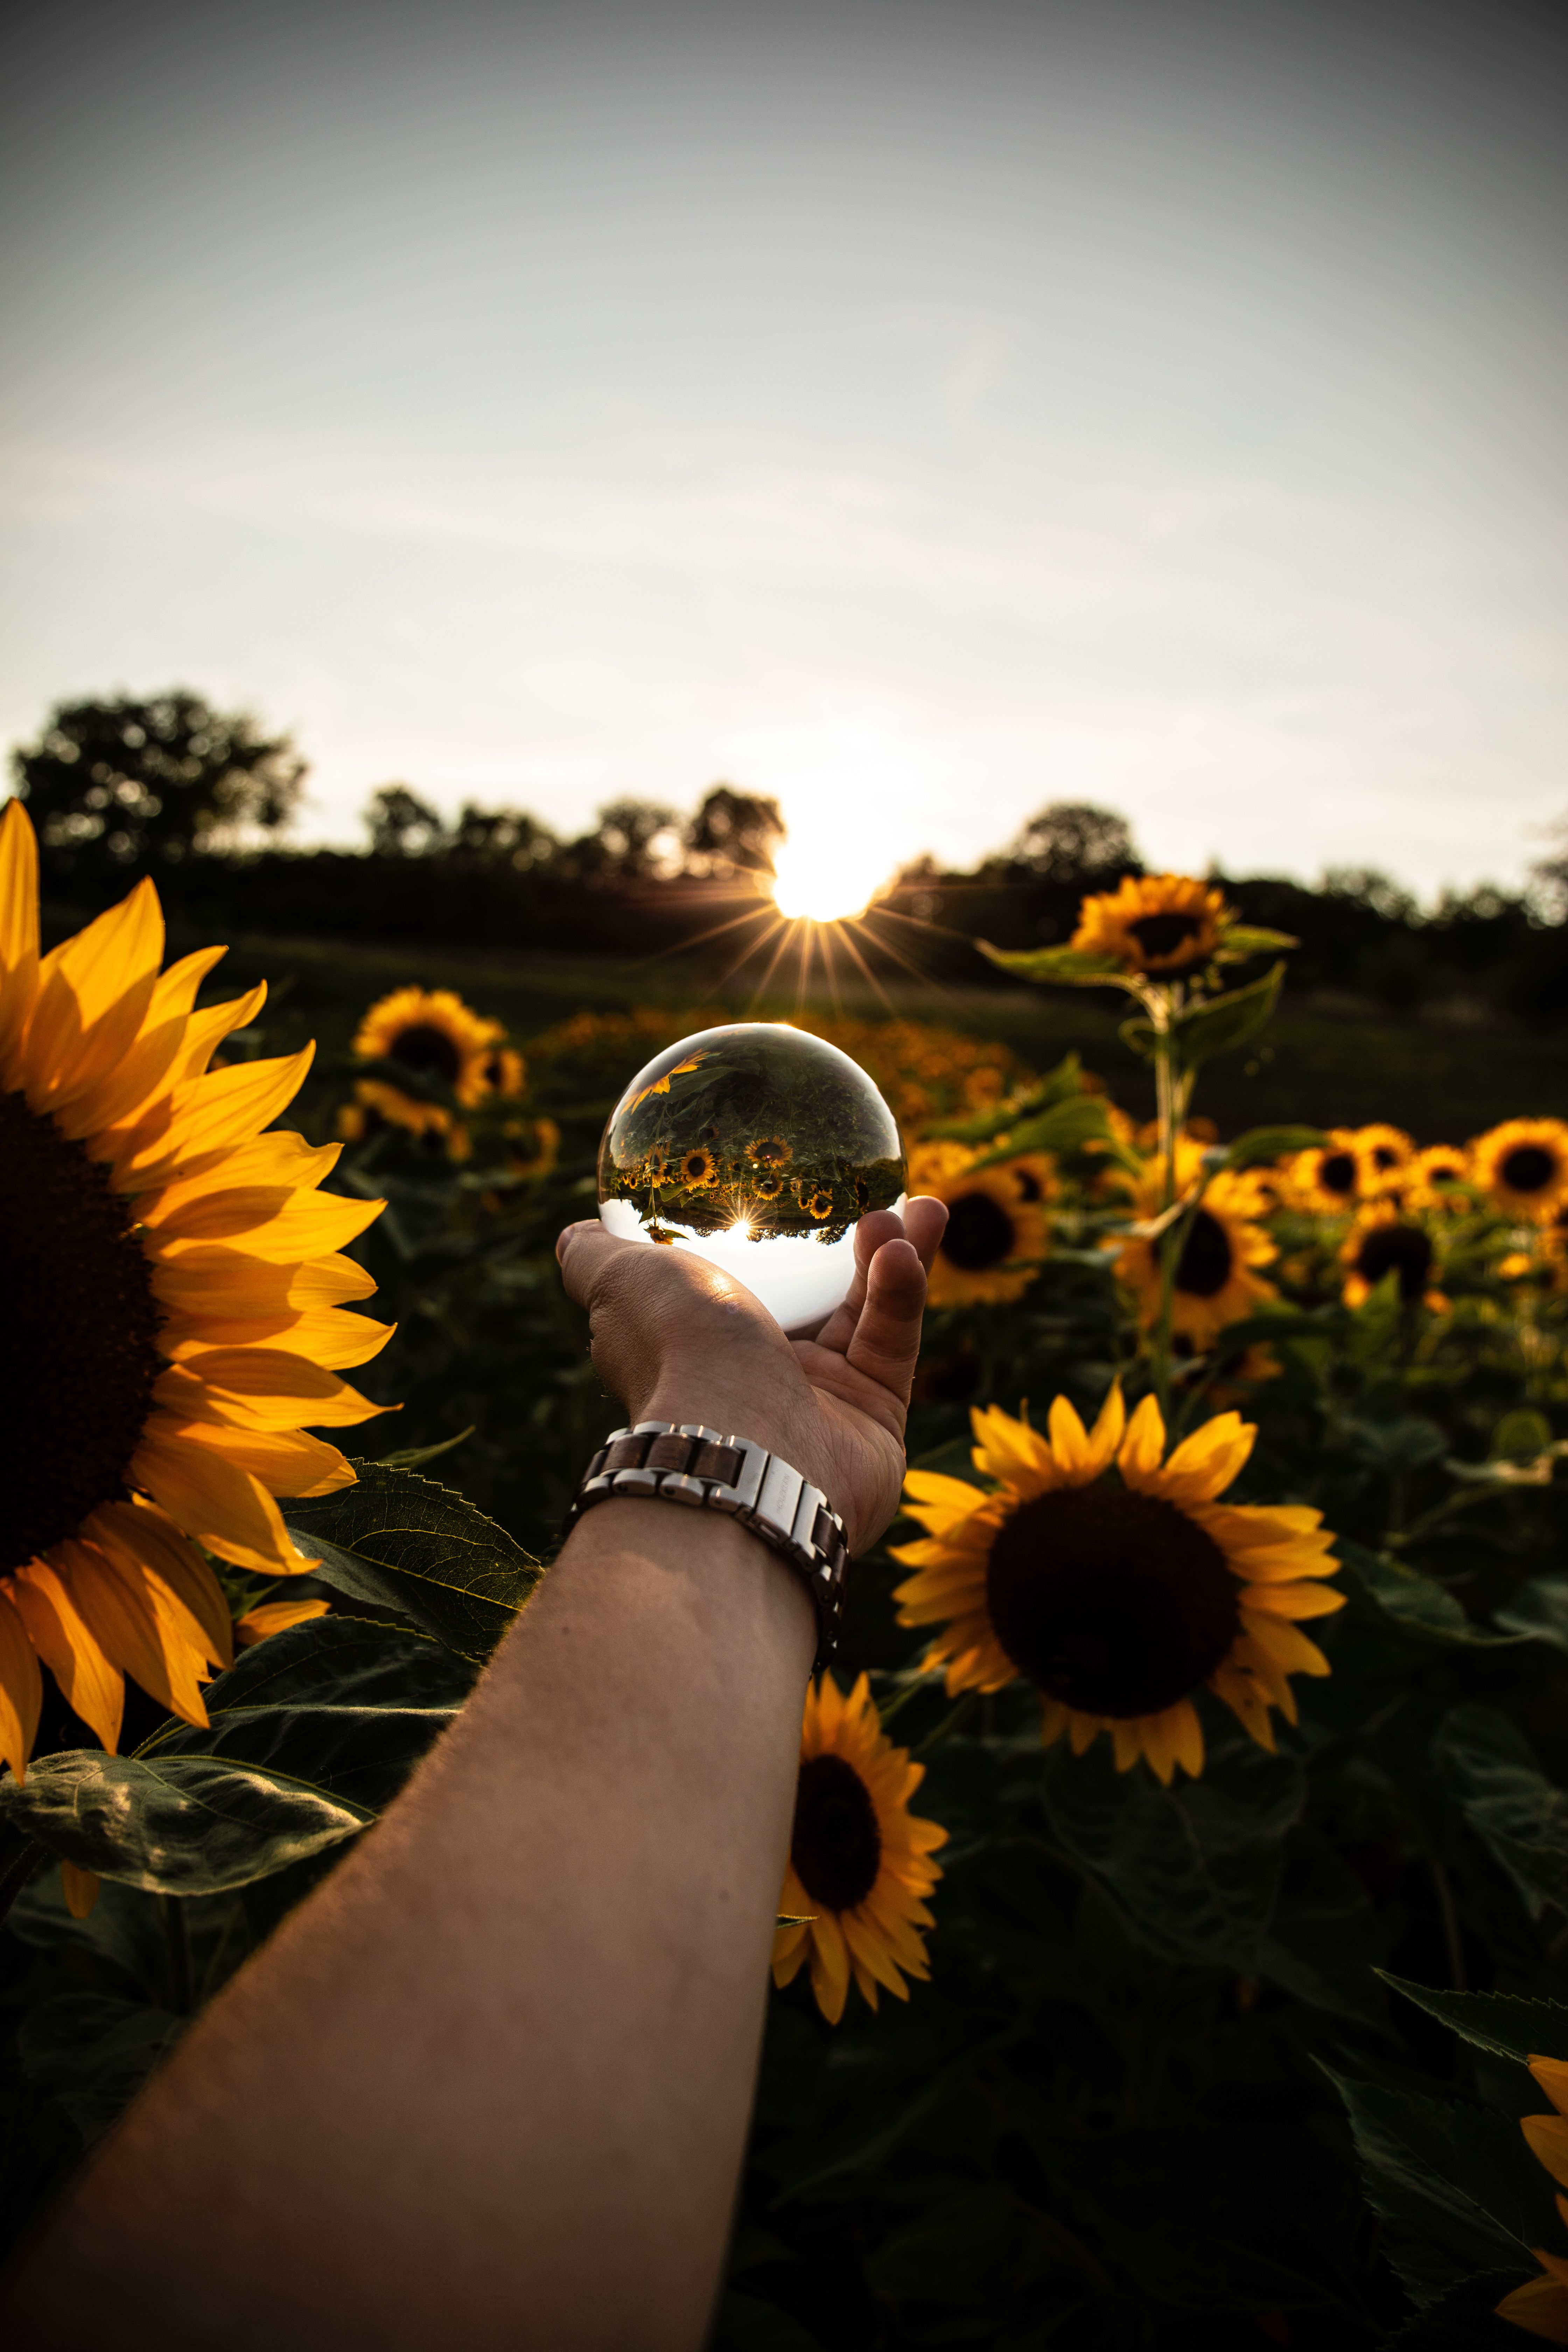 Using A Lensball To Reflect A Sunflower Field While Sun Is Setting Sunset Sunflowe Reflection Photography Sunflower Photography Sunflower Field Photography